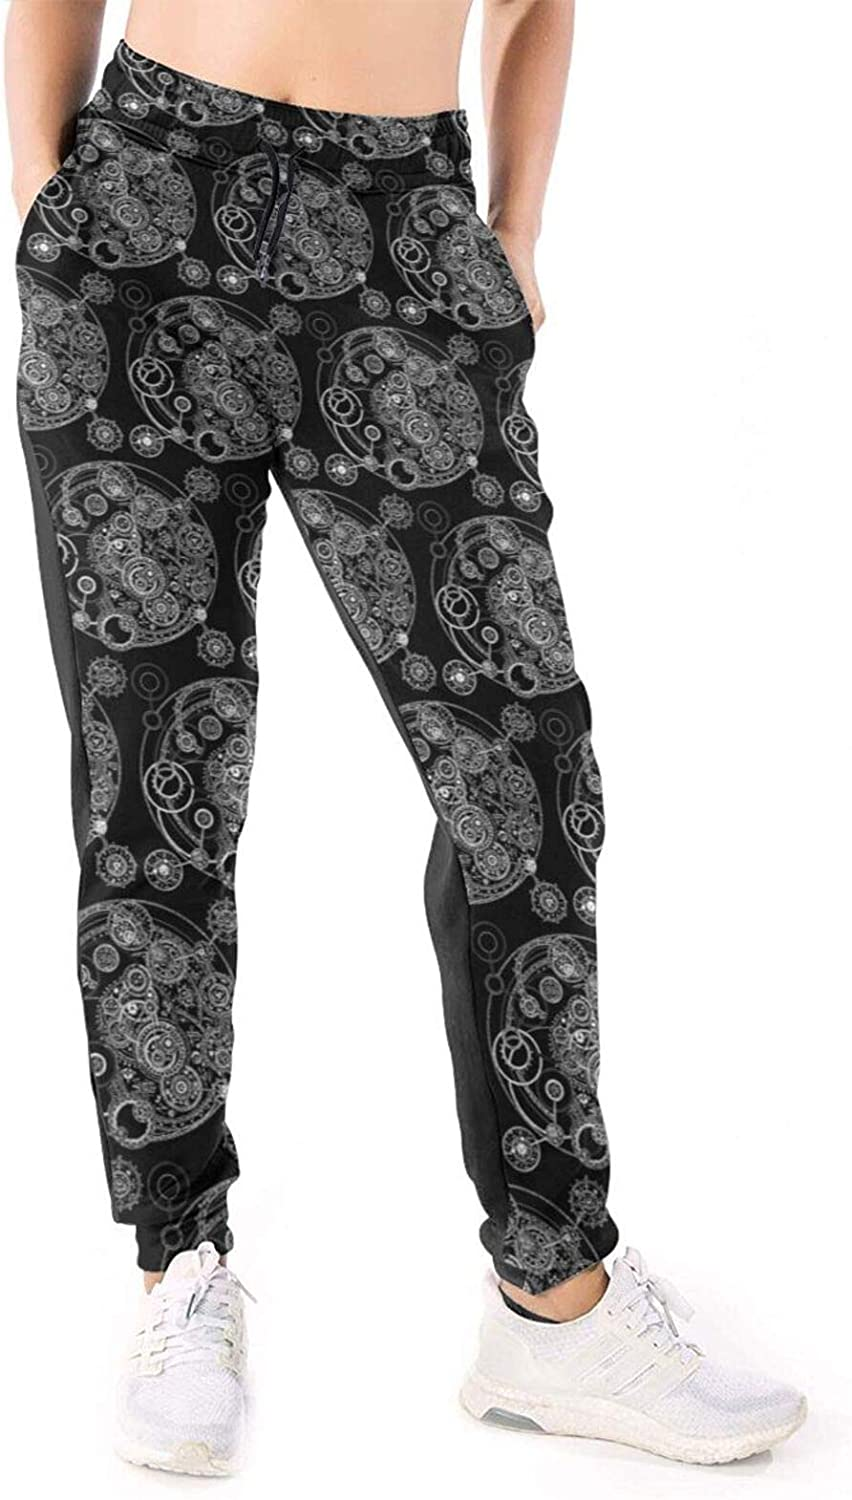 Women Joggers Pants Steampunk Gears Earth White Athletic Sweatpants with Pockets Casual Trousers Baggy